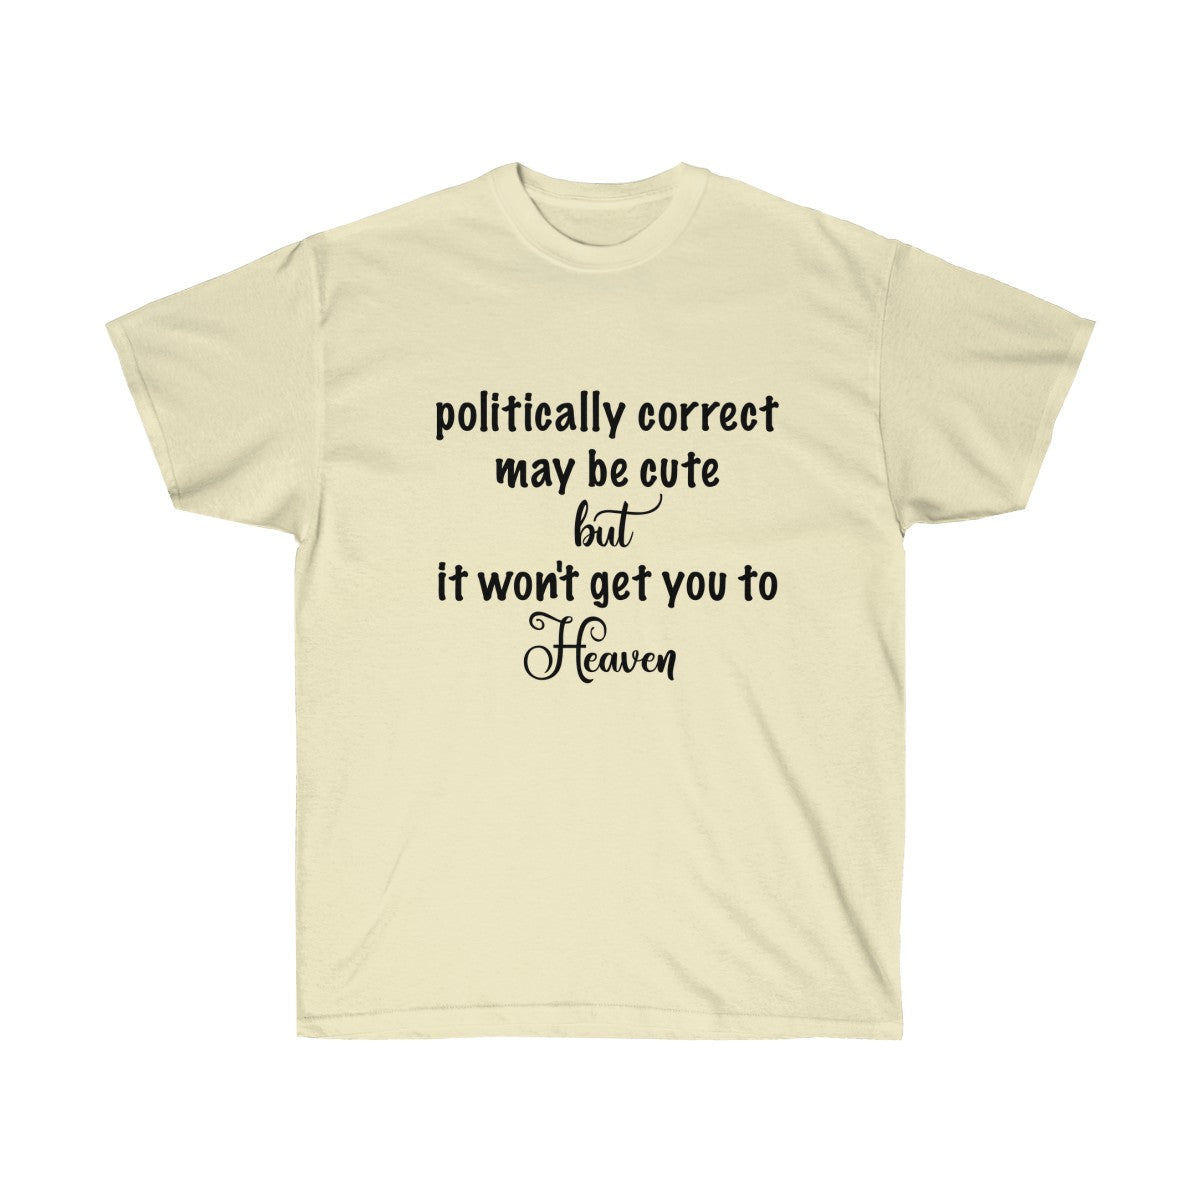 Won't Get You To Heaven Political Humor Unisex Ultra Cotton Tee - skyrockettees